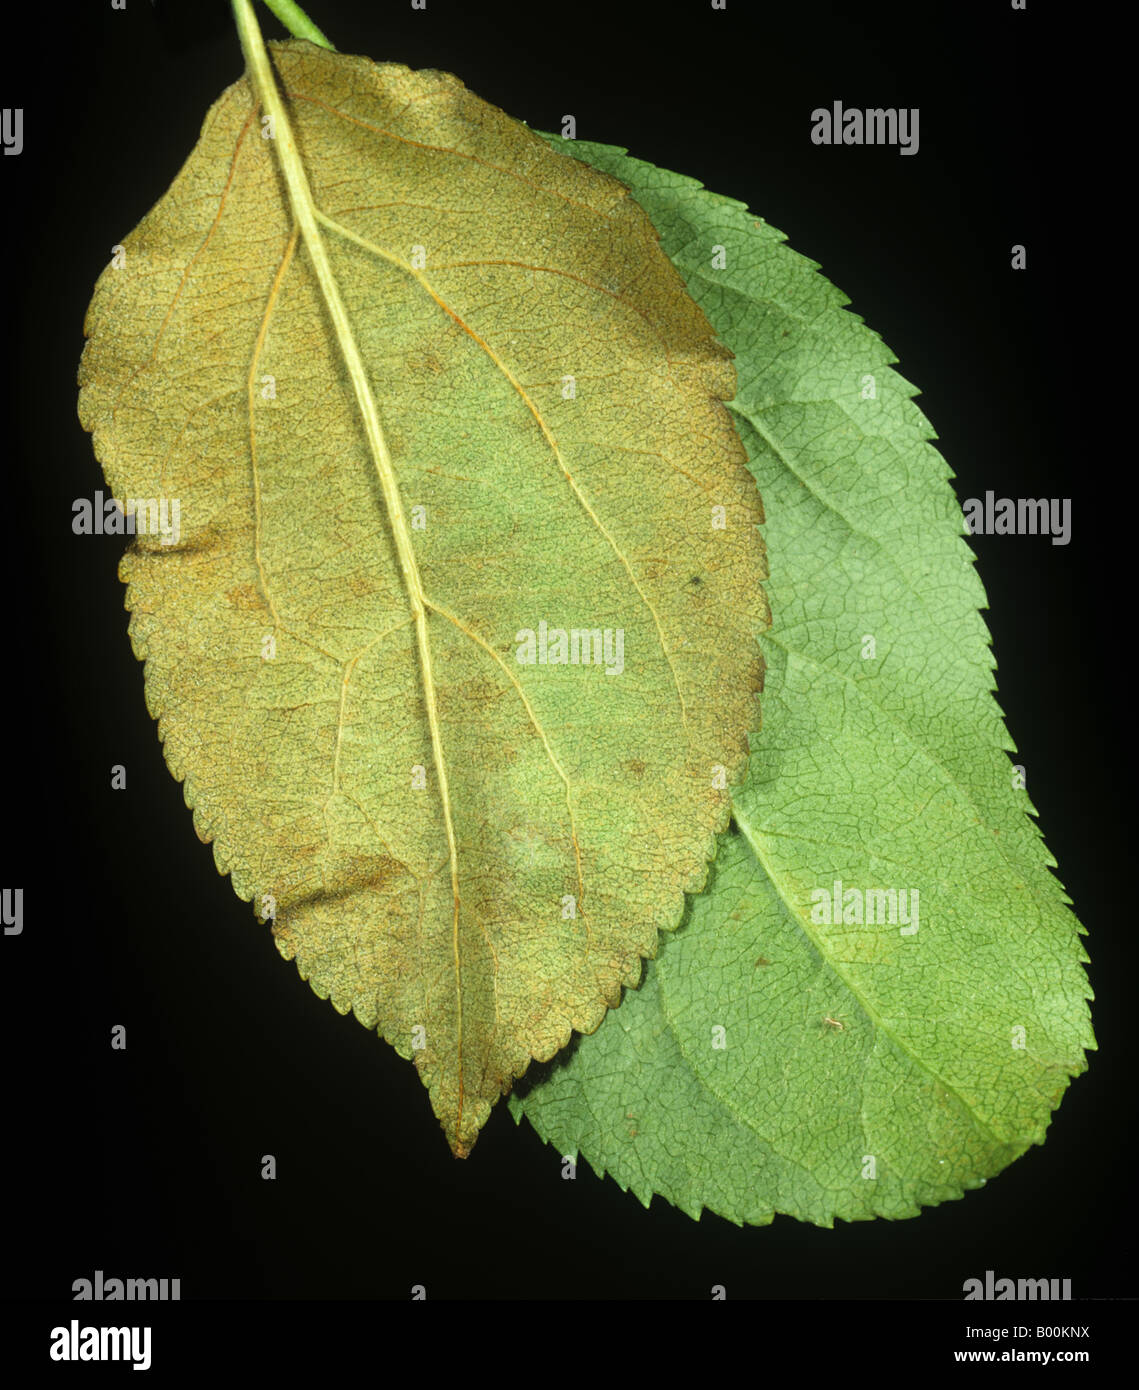 Comparison of bronzed apple leaf damaged by fruit tree red spider mite Panonychus ulmi healthy - Stock Image